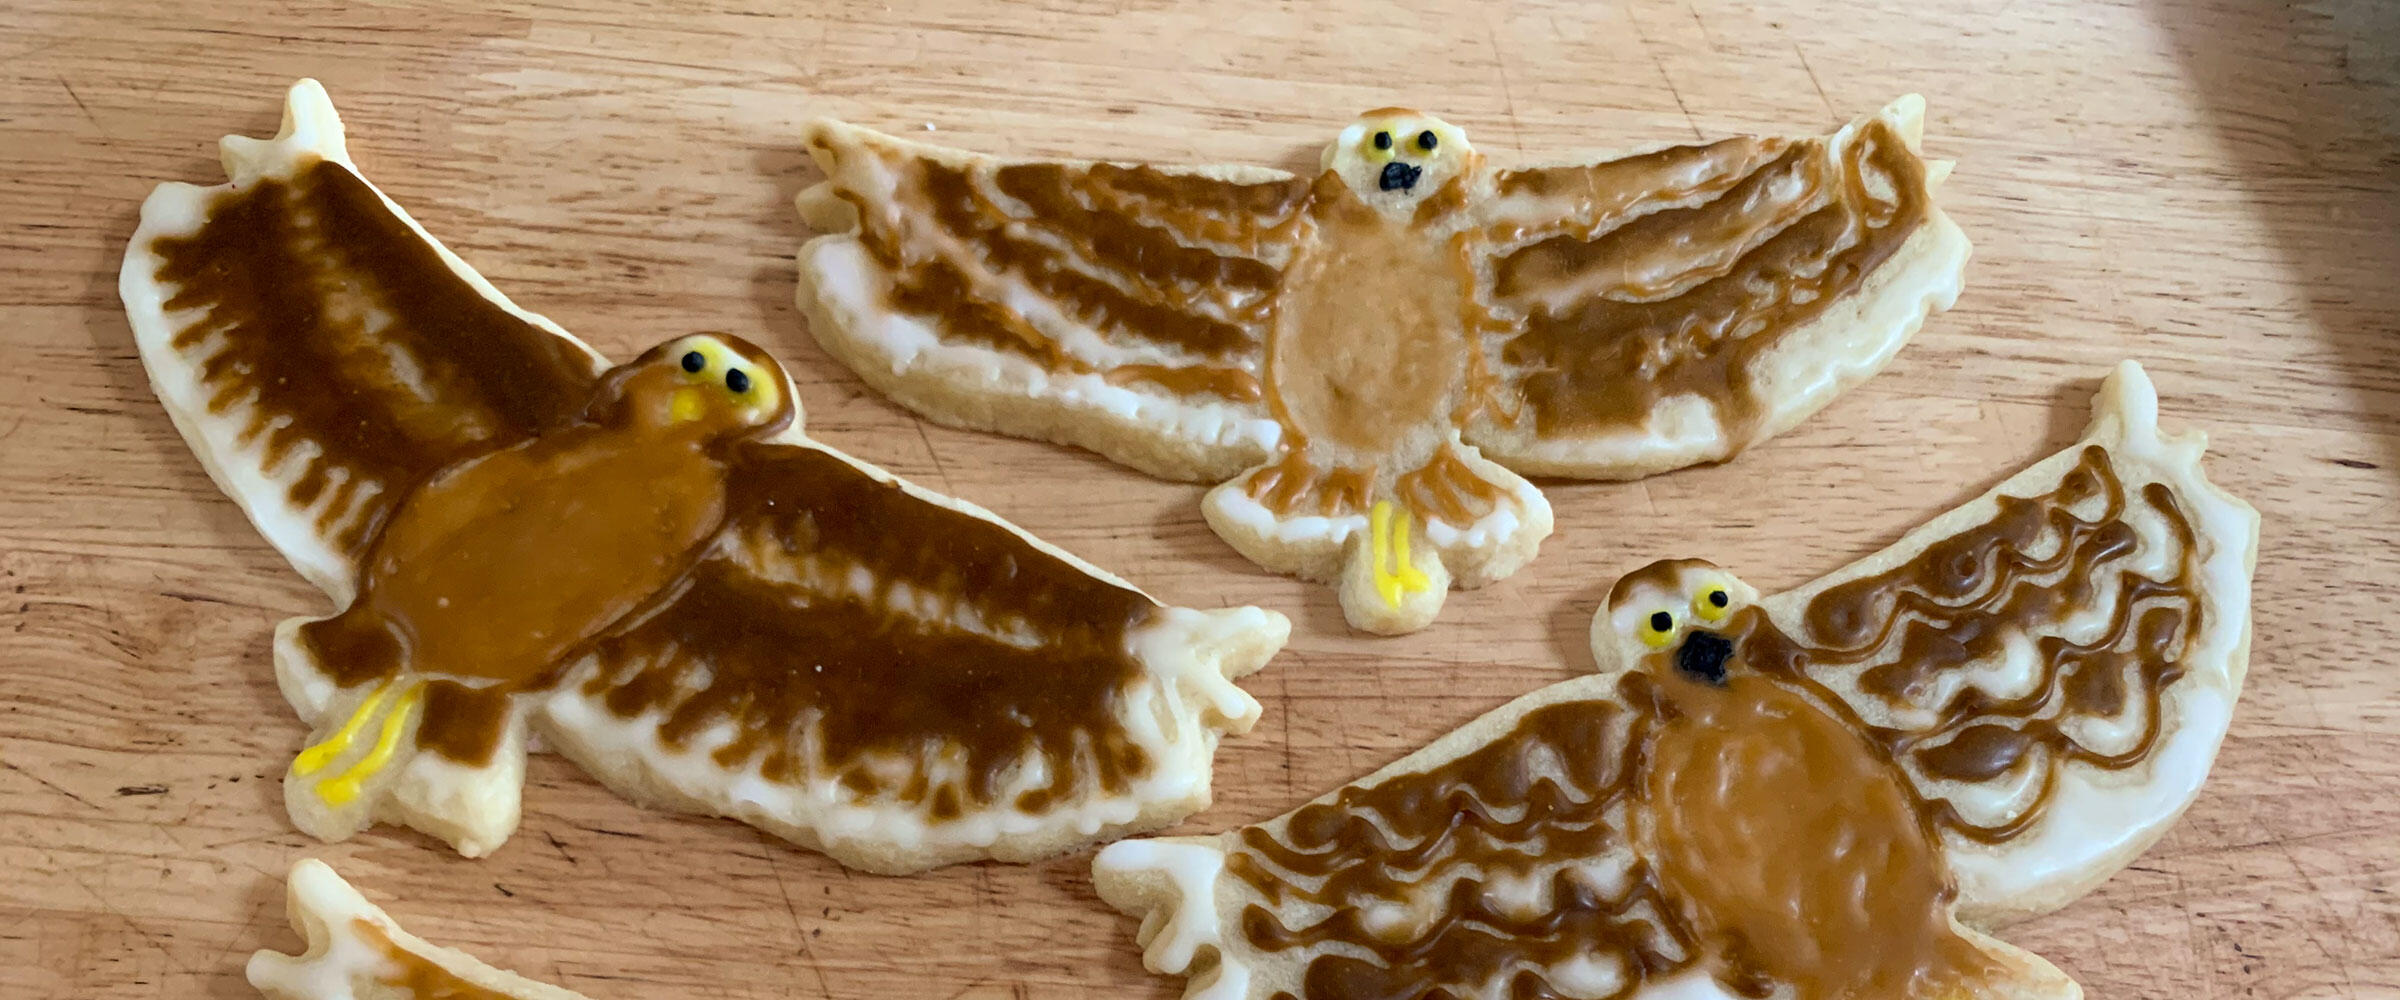 Cookes shaped and decorated like Burrowing Owls in flight.